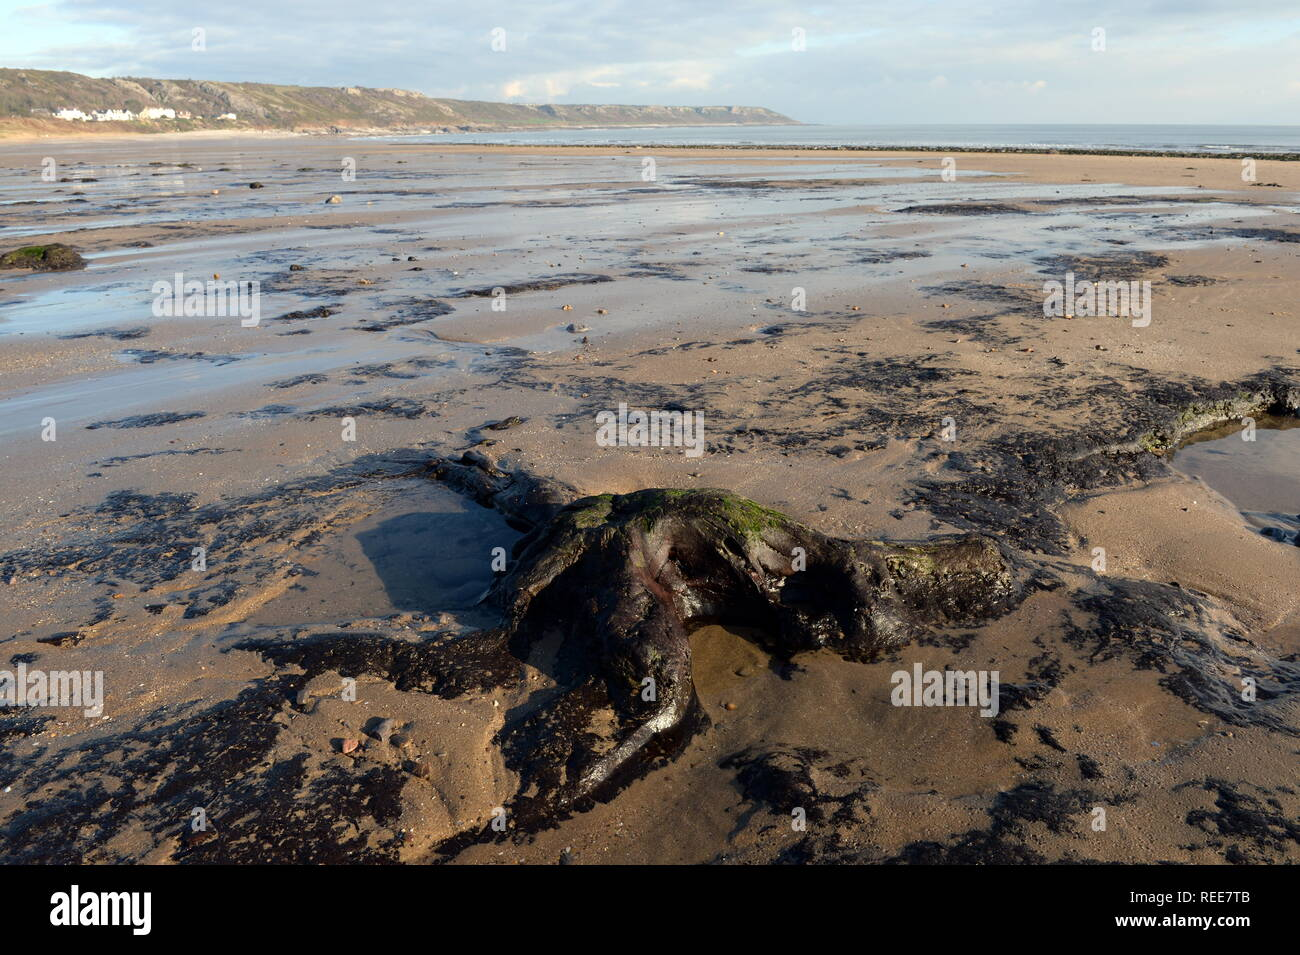 Ancient forest tree trunks revealed at low tide Port Eynon Bay. Swansea are evidence of the rise in post glacial sea levels from climatic ice melt. Stock Photo